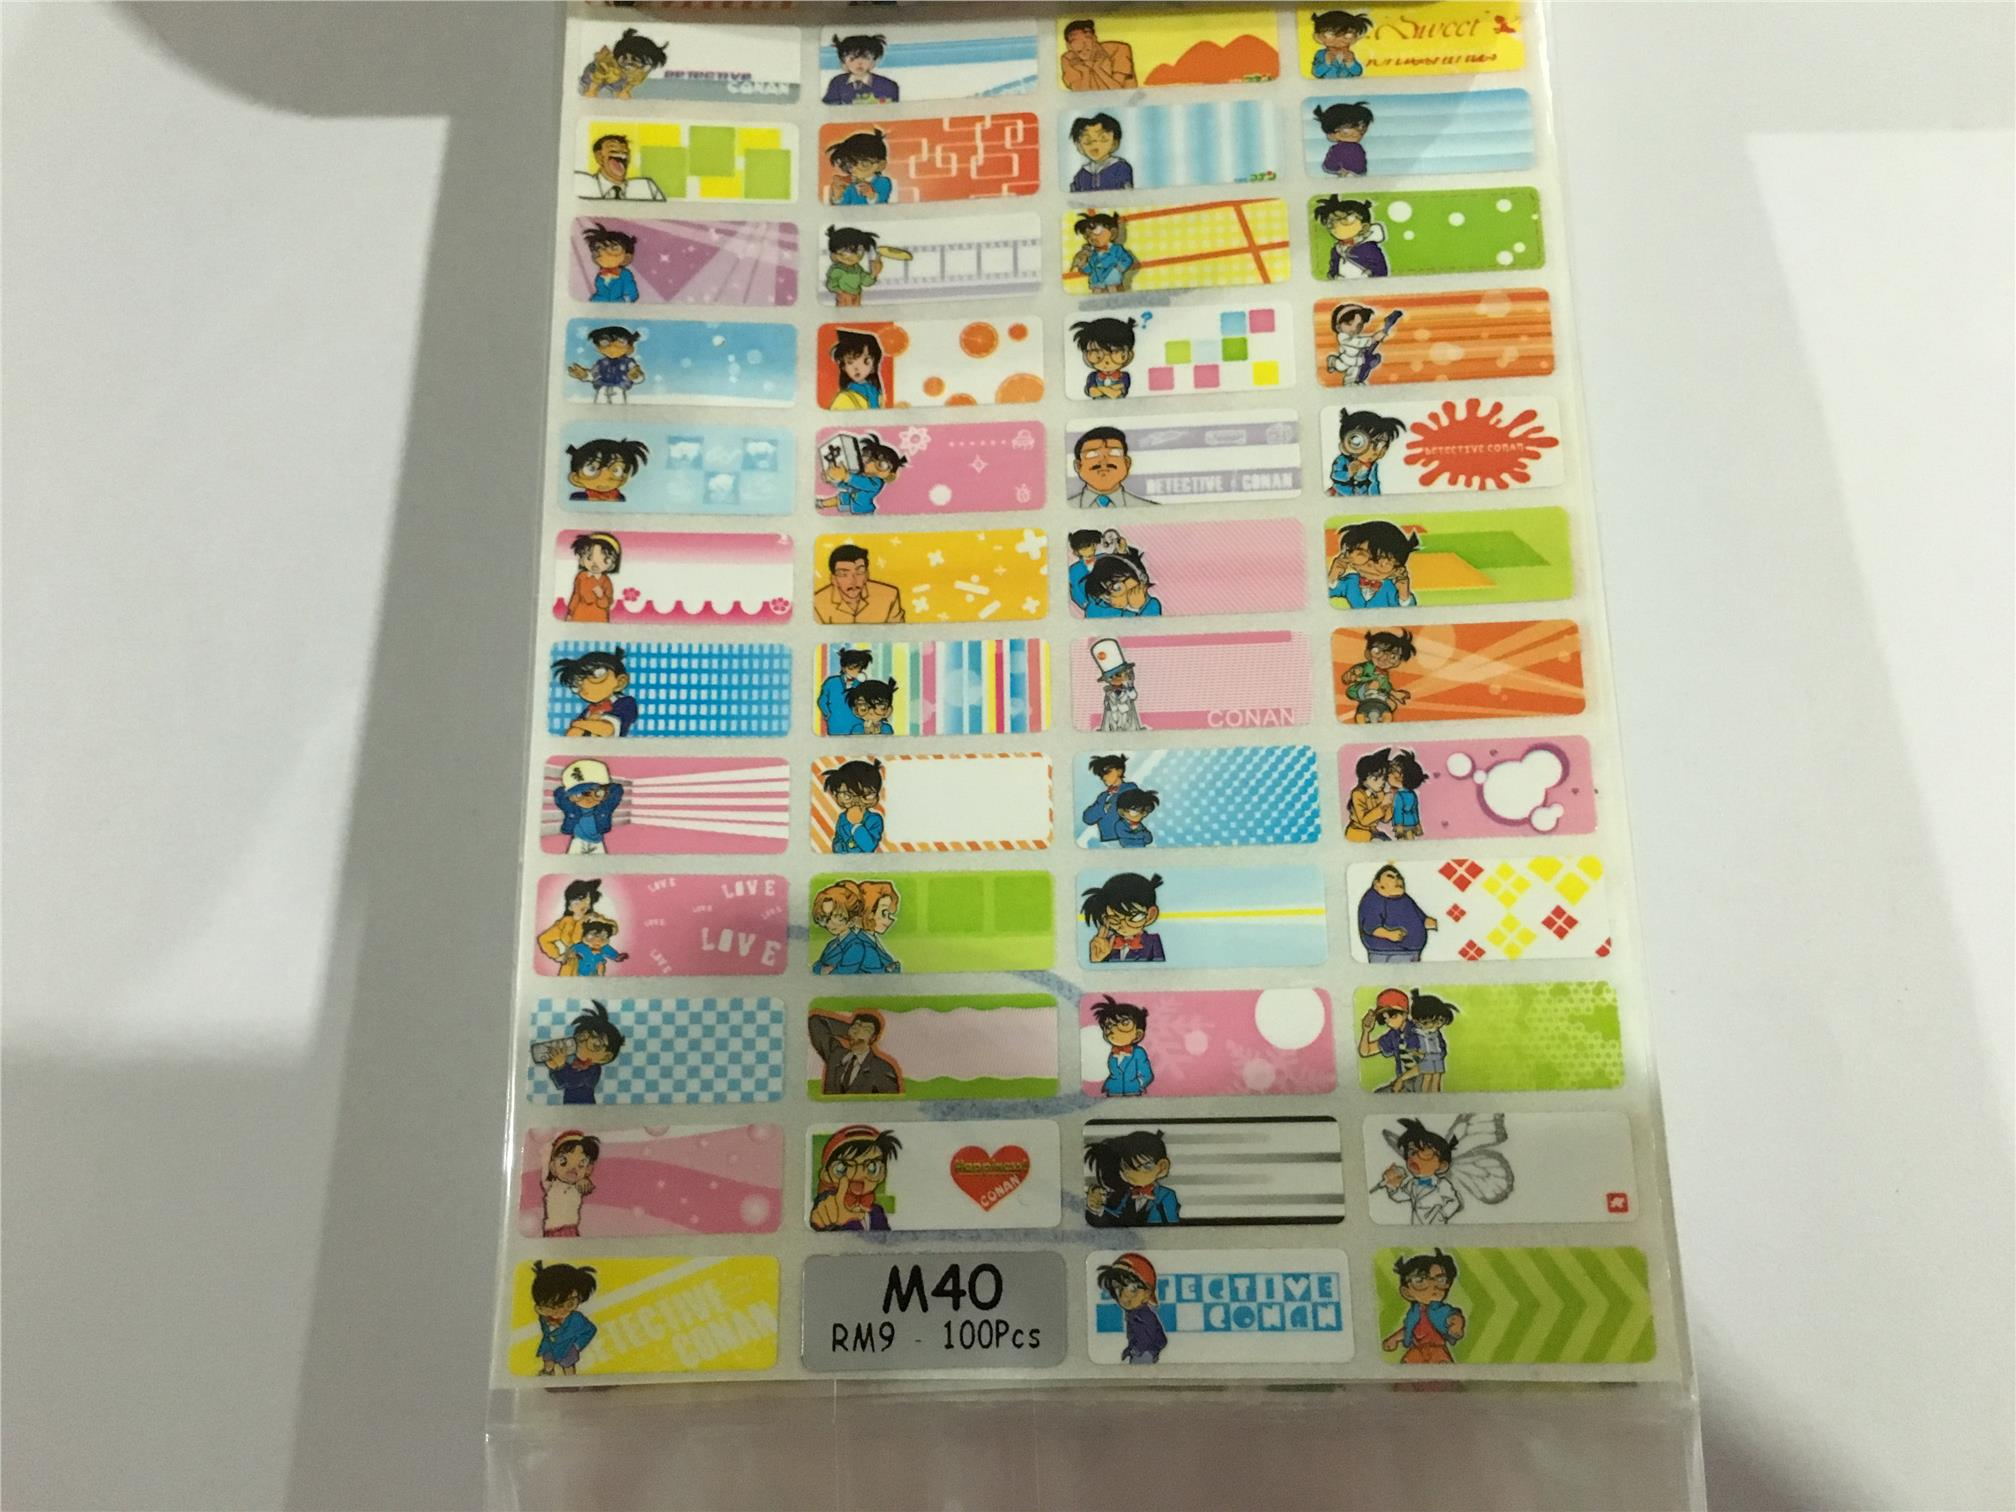 Sticker Name 姓名贴 Sticker Nama Conan 柯Õ..